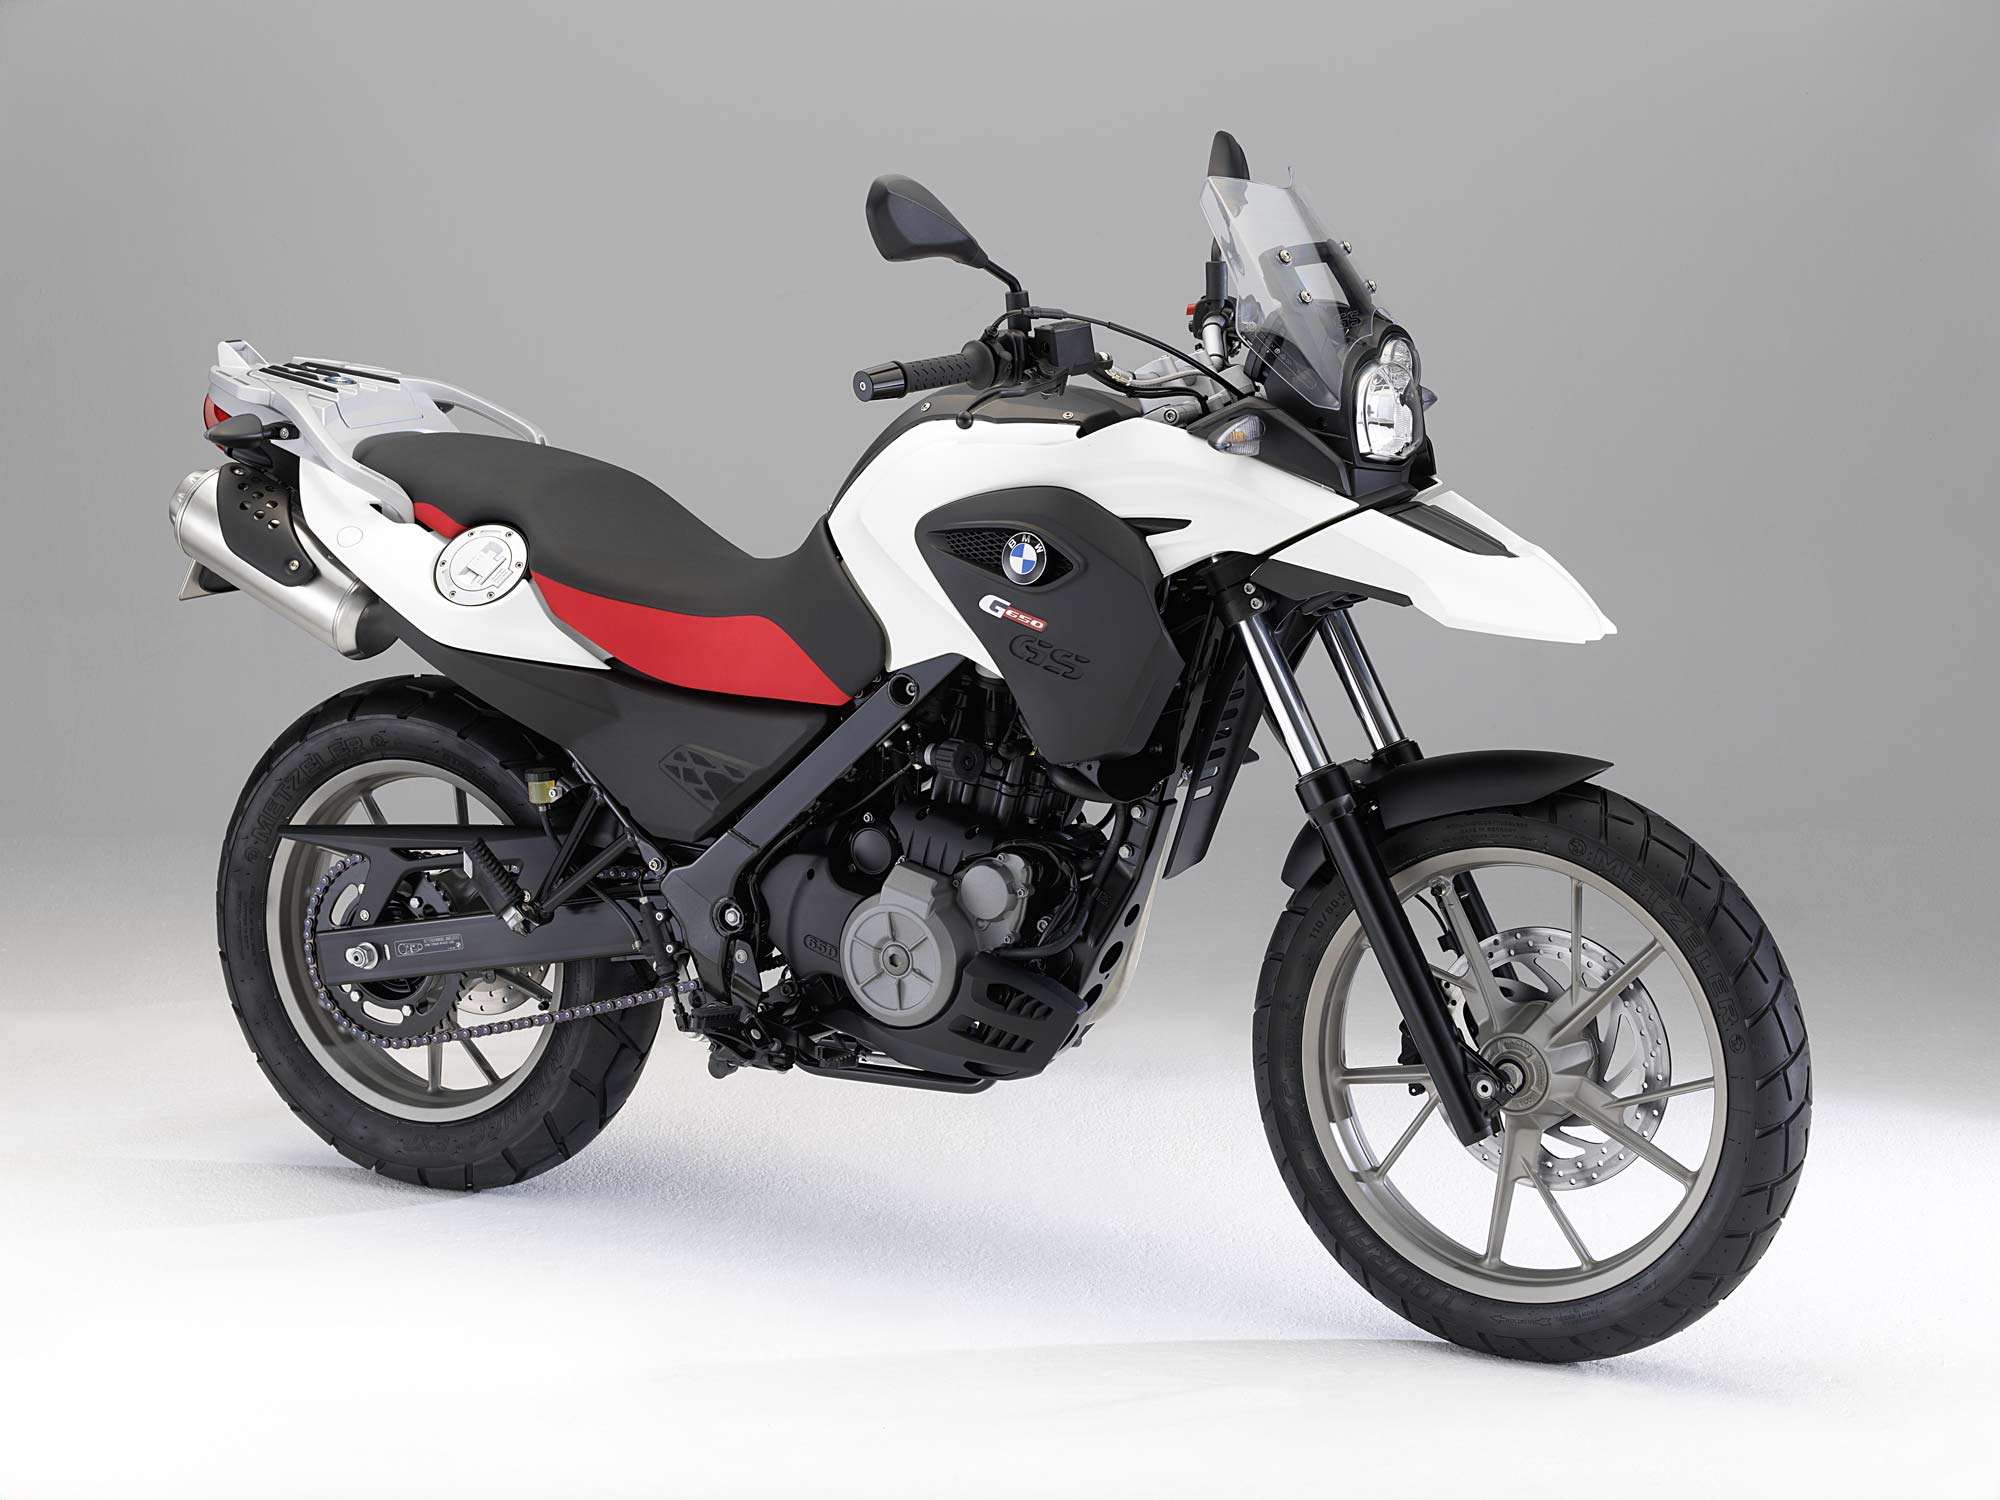 2011 BMW G650GS – A Face Only a Mother Could Love